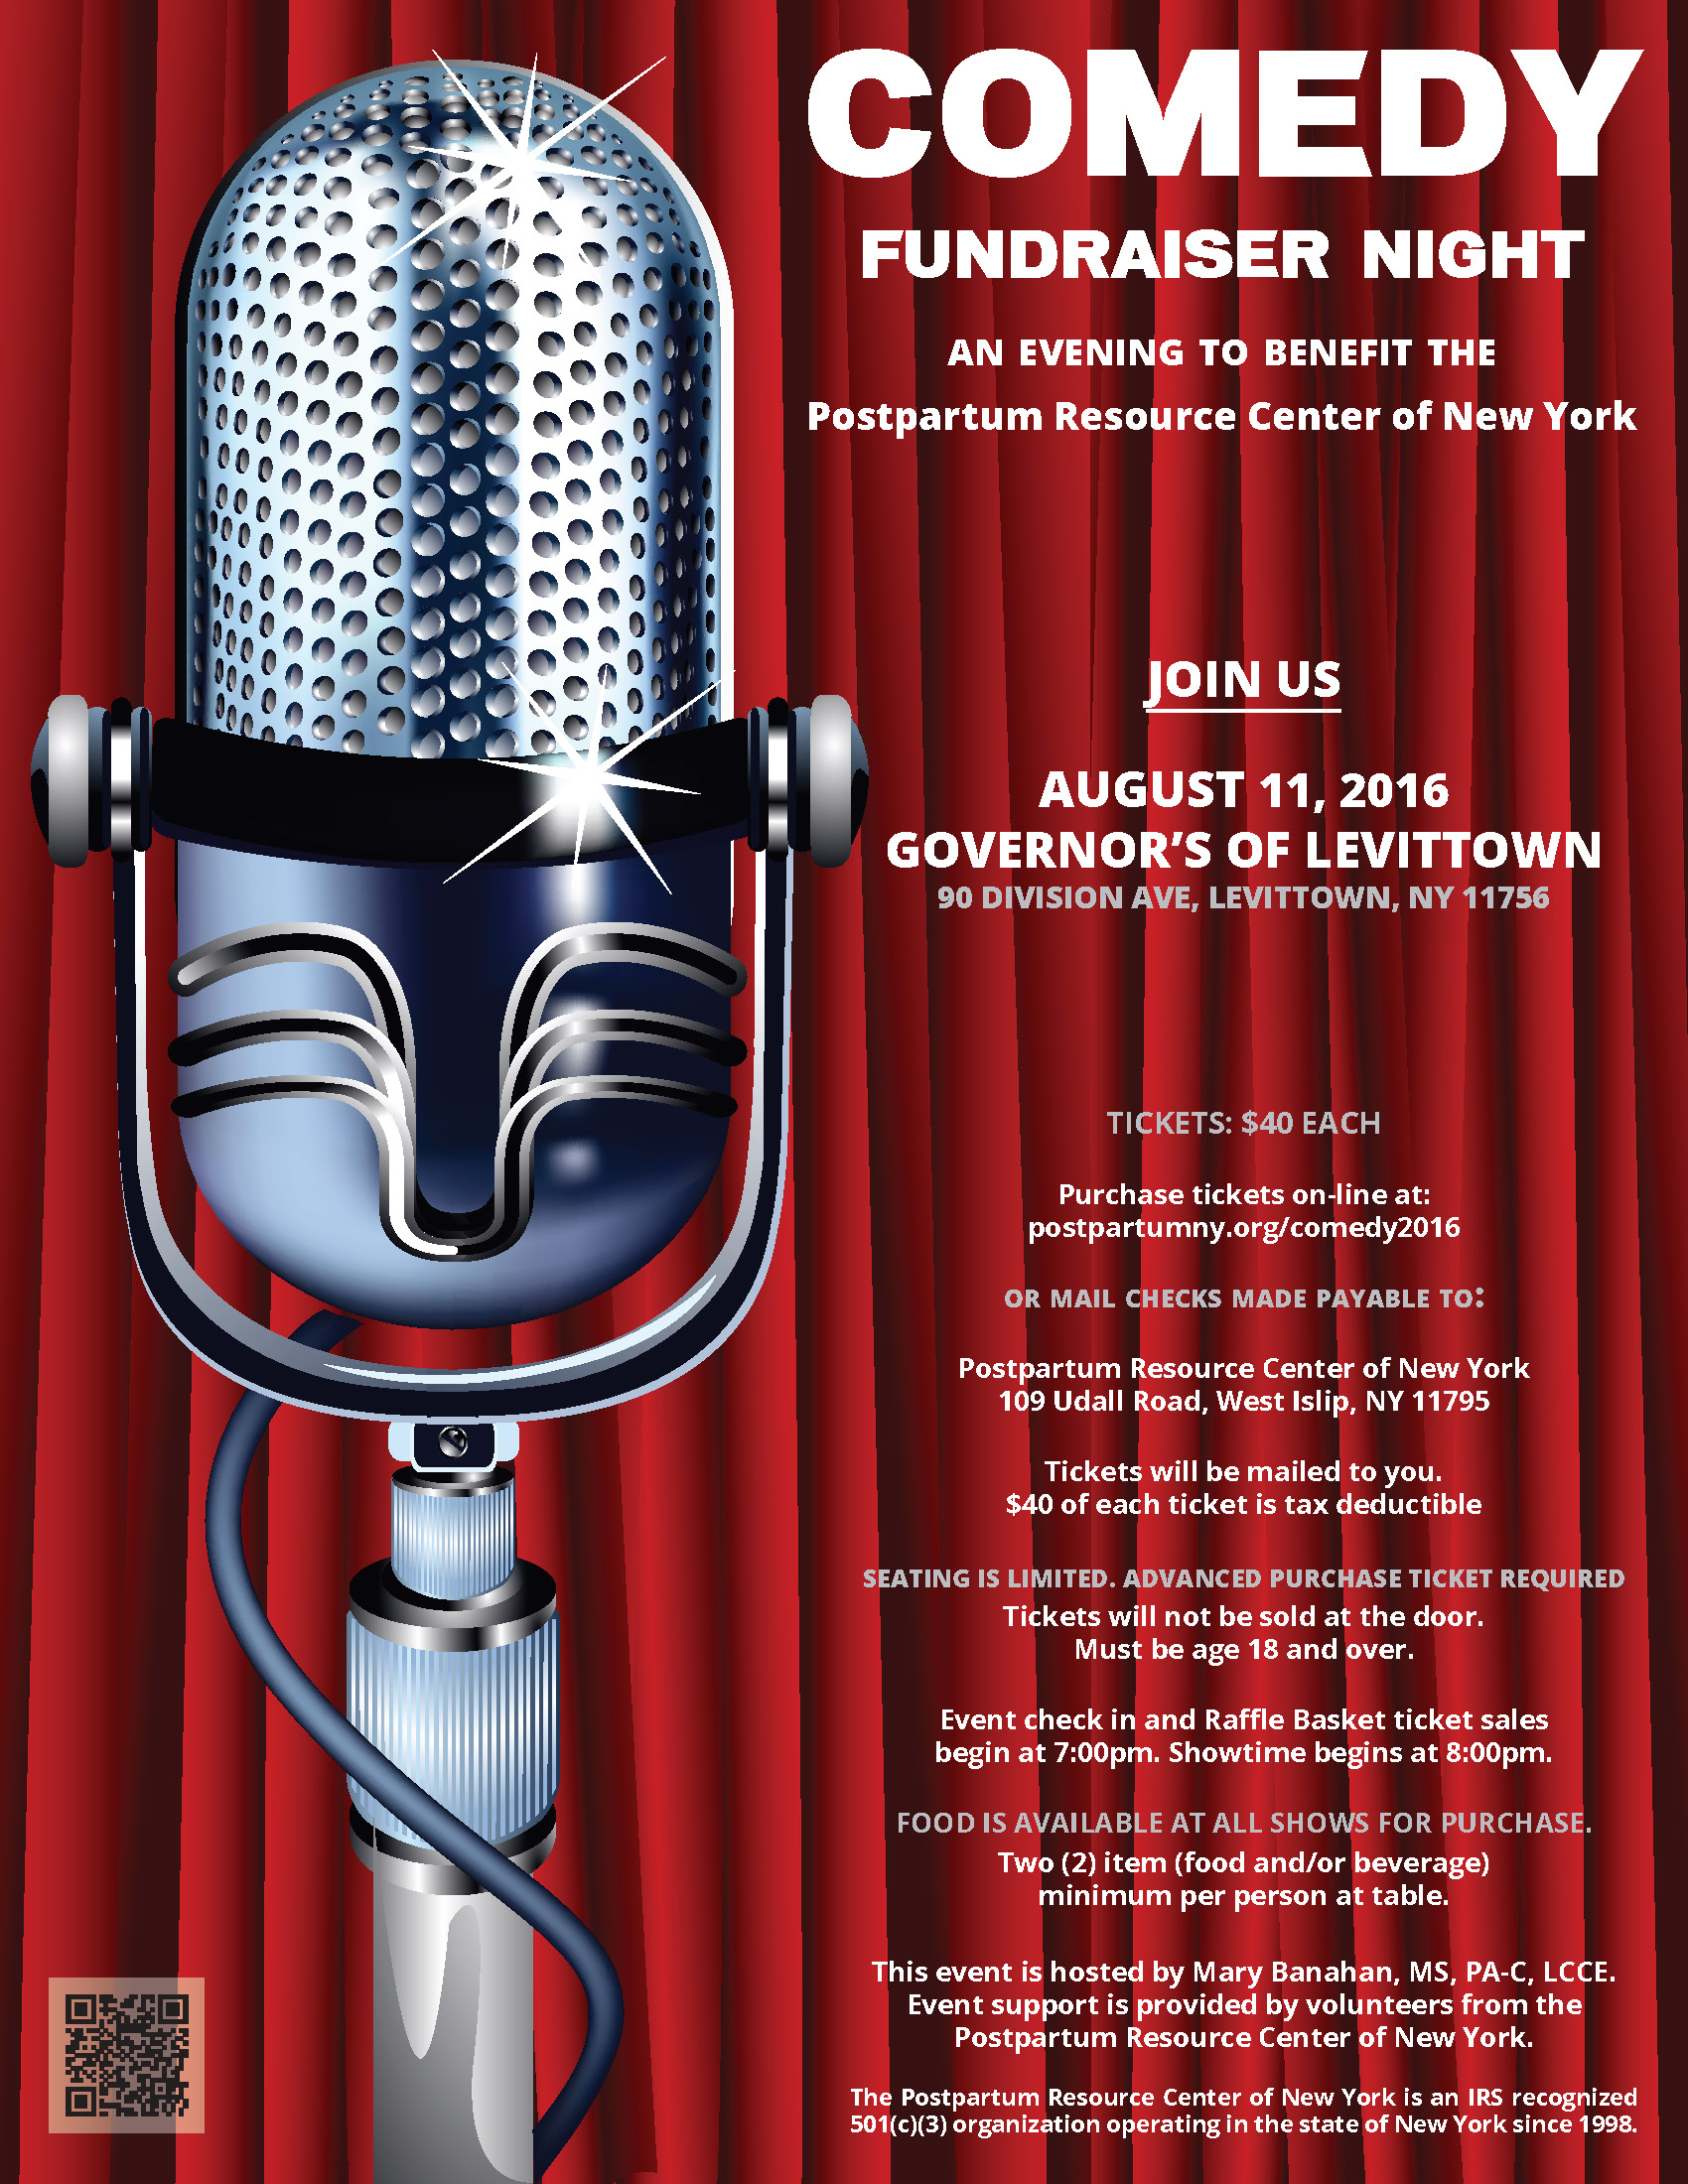 Governor's Comedy Club of Levittown Comedy Fundraiser Night flyer.